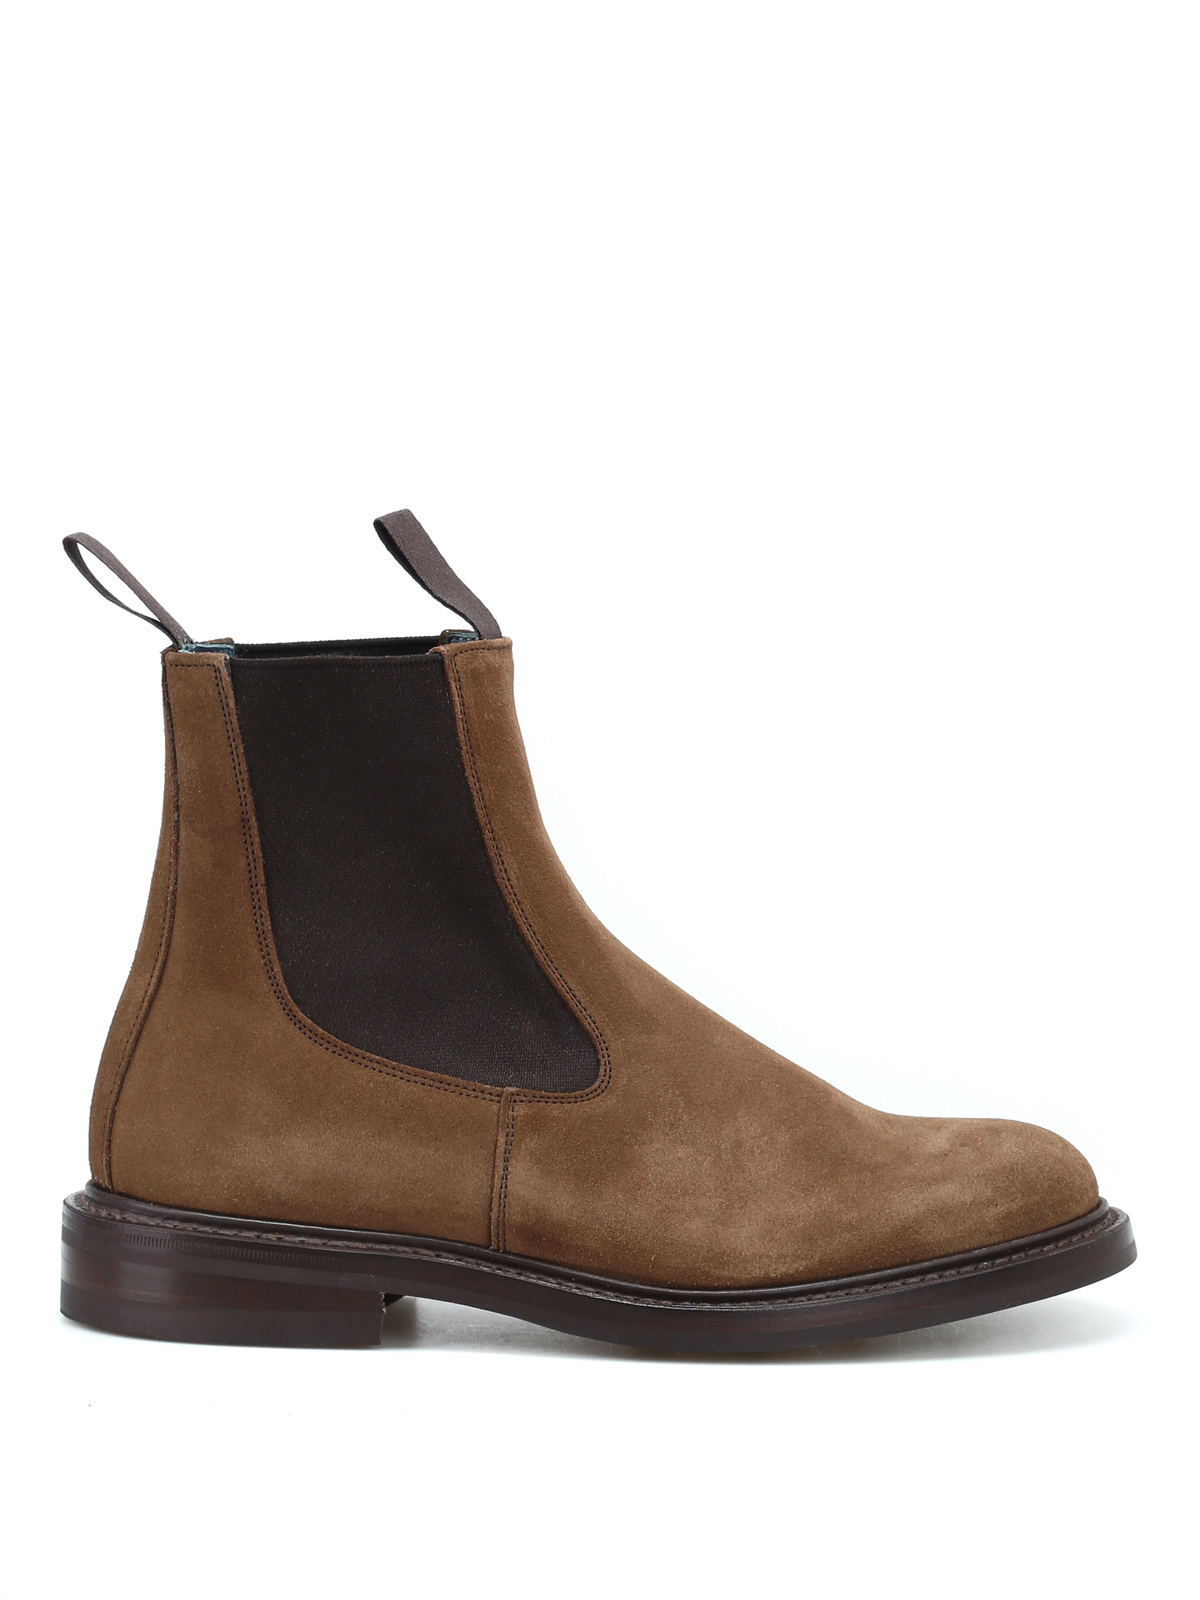 a1fcf5a88f01c Tricker s - Stephen Revival brown suede ankle boots - ankle boots ...